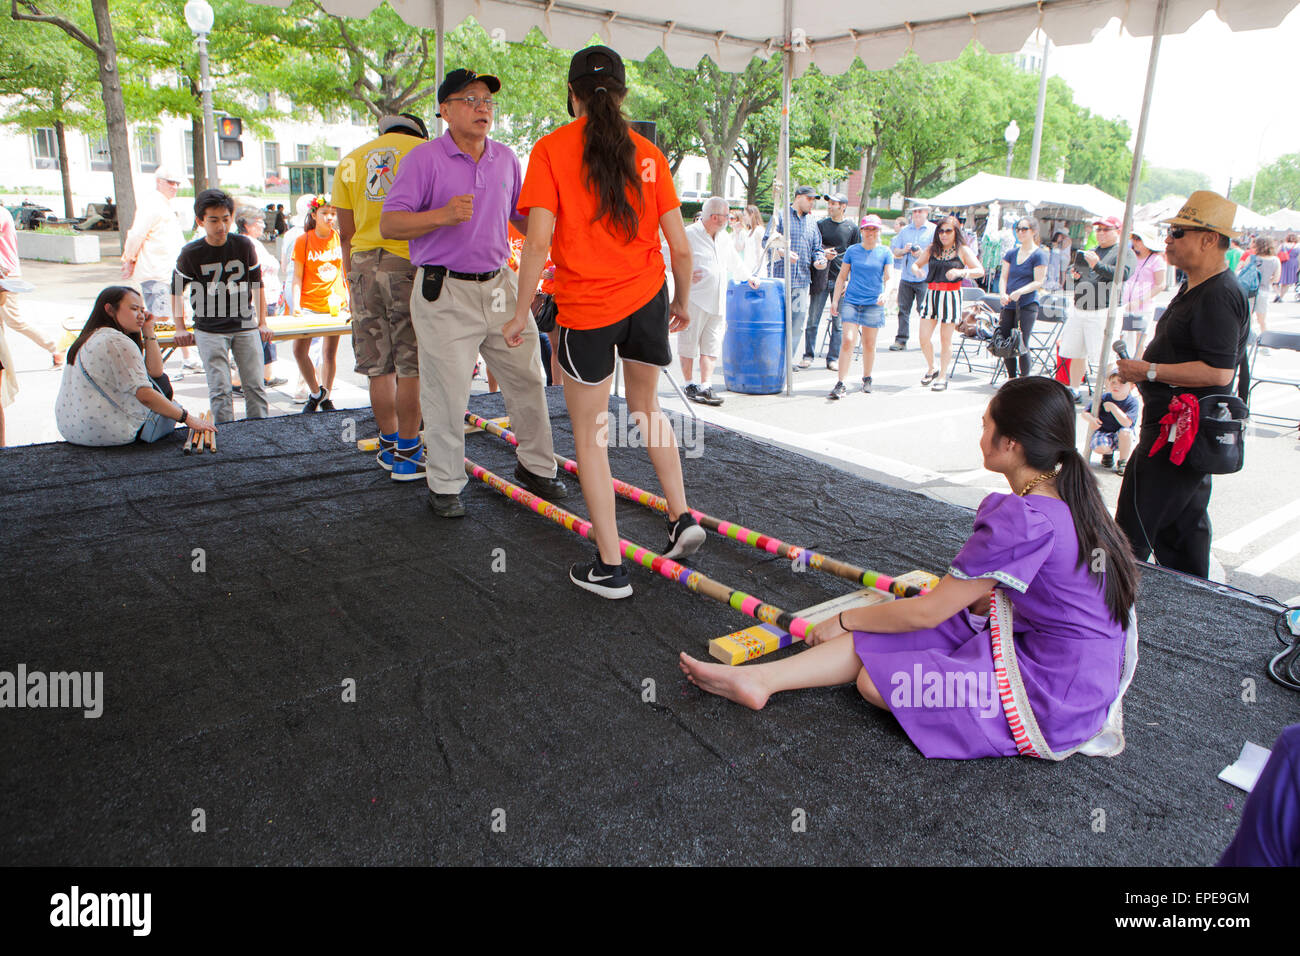 Tinikling (Philippine folk dance) performers on stage - National Asian Heritage Festival, Washington, DC USA - Stock Image